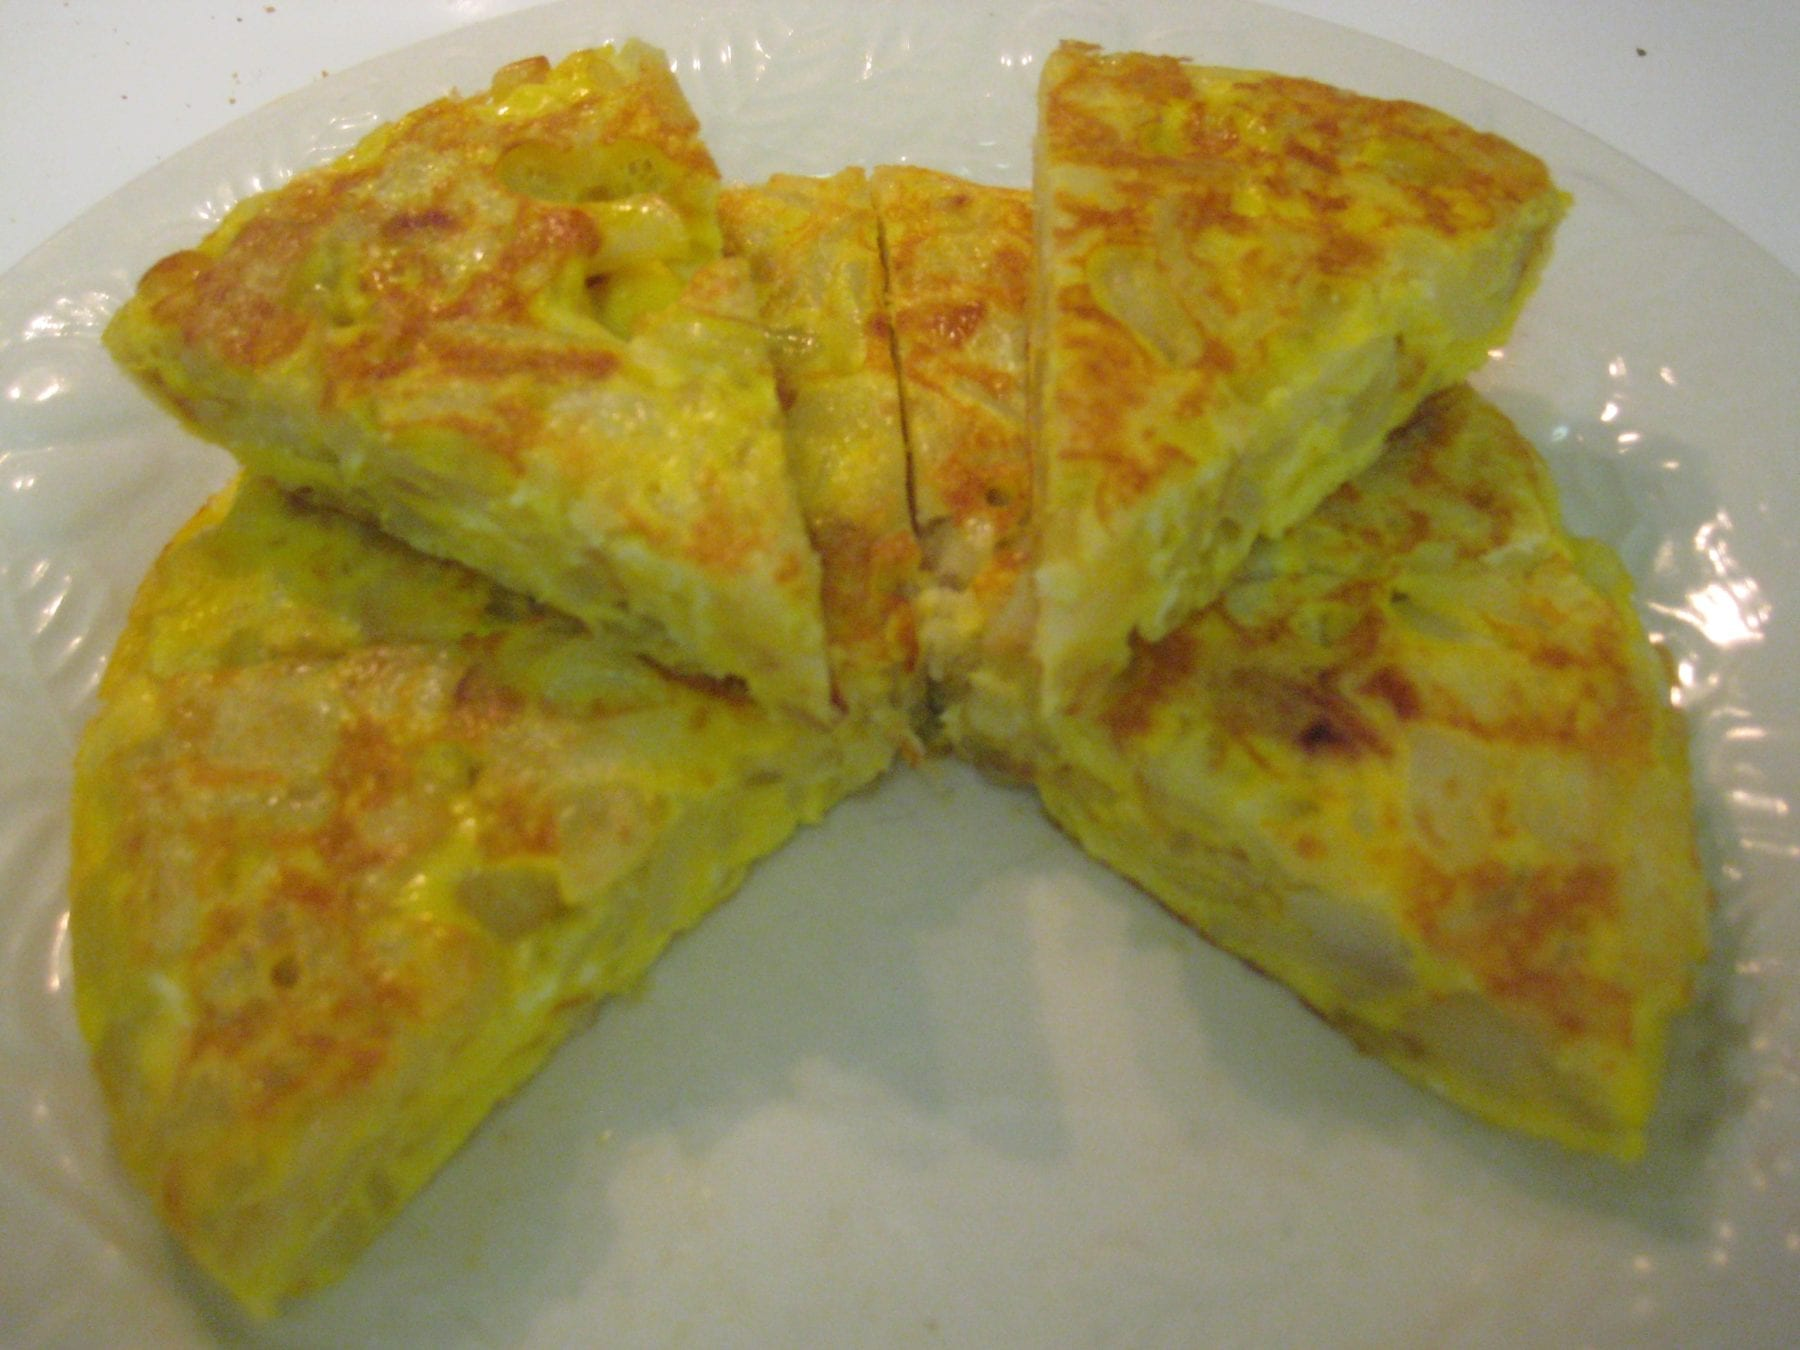 So I made a La Tortilla de Espana (Spanish Tortilla) this morning for ...